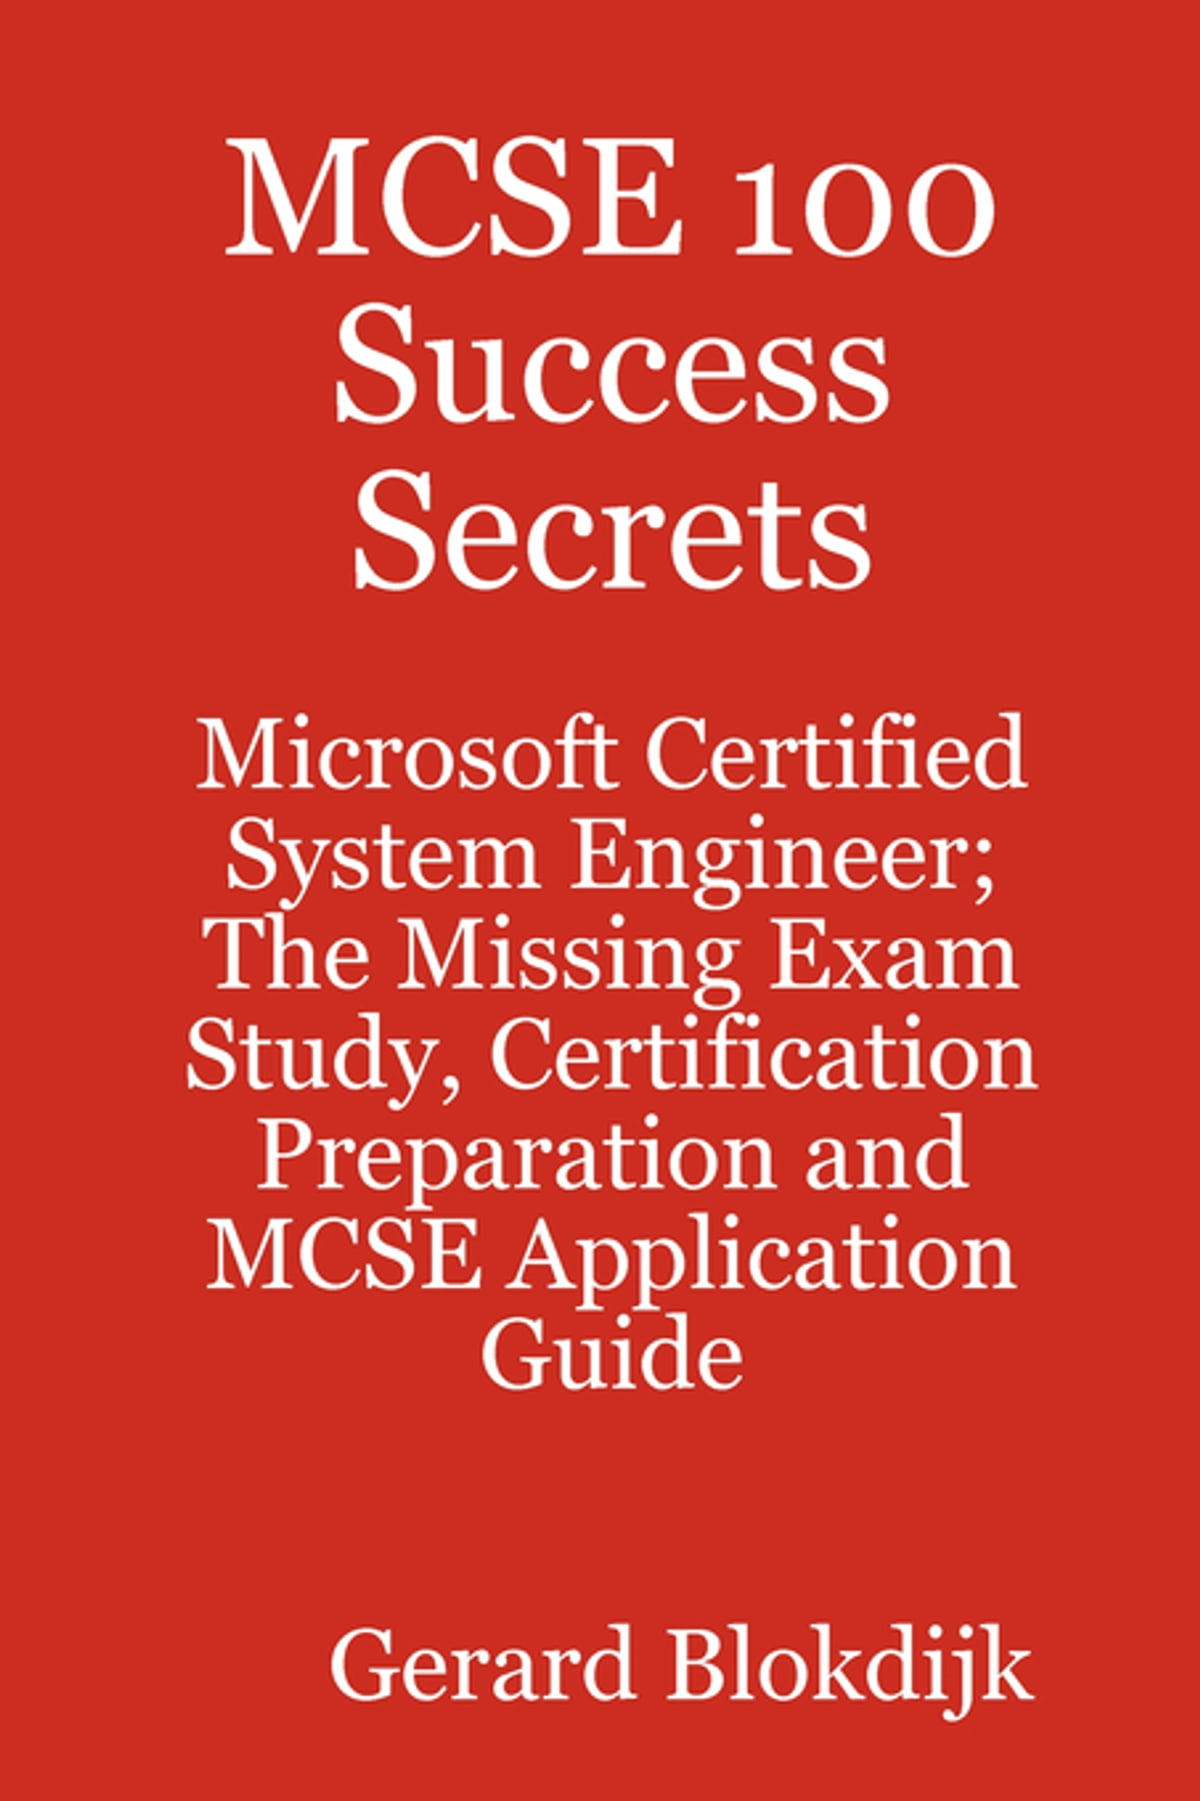 MCSE 100 Success Secrets Microsoft Certified System Engineer The Missing Exam Study Certification Preparation And MCSE Application Guide Ebook By